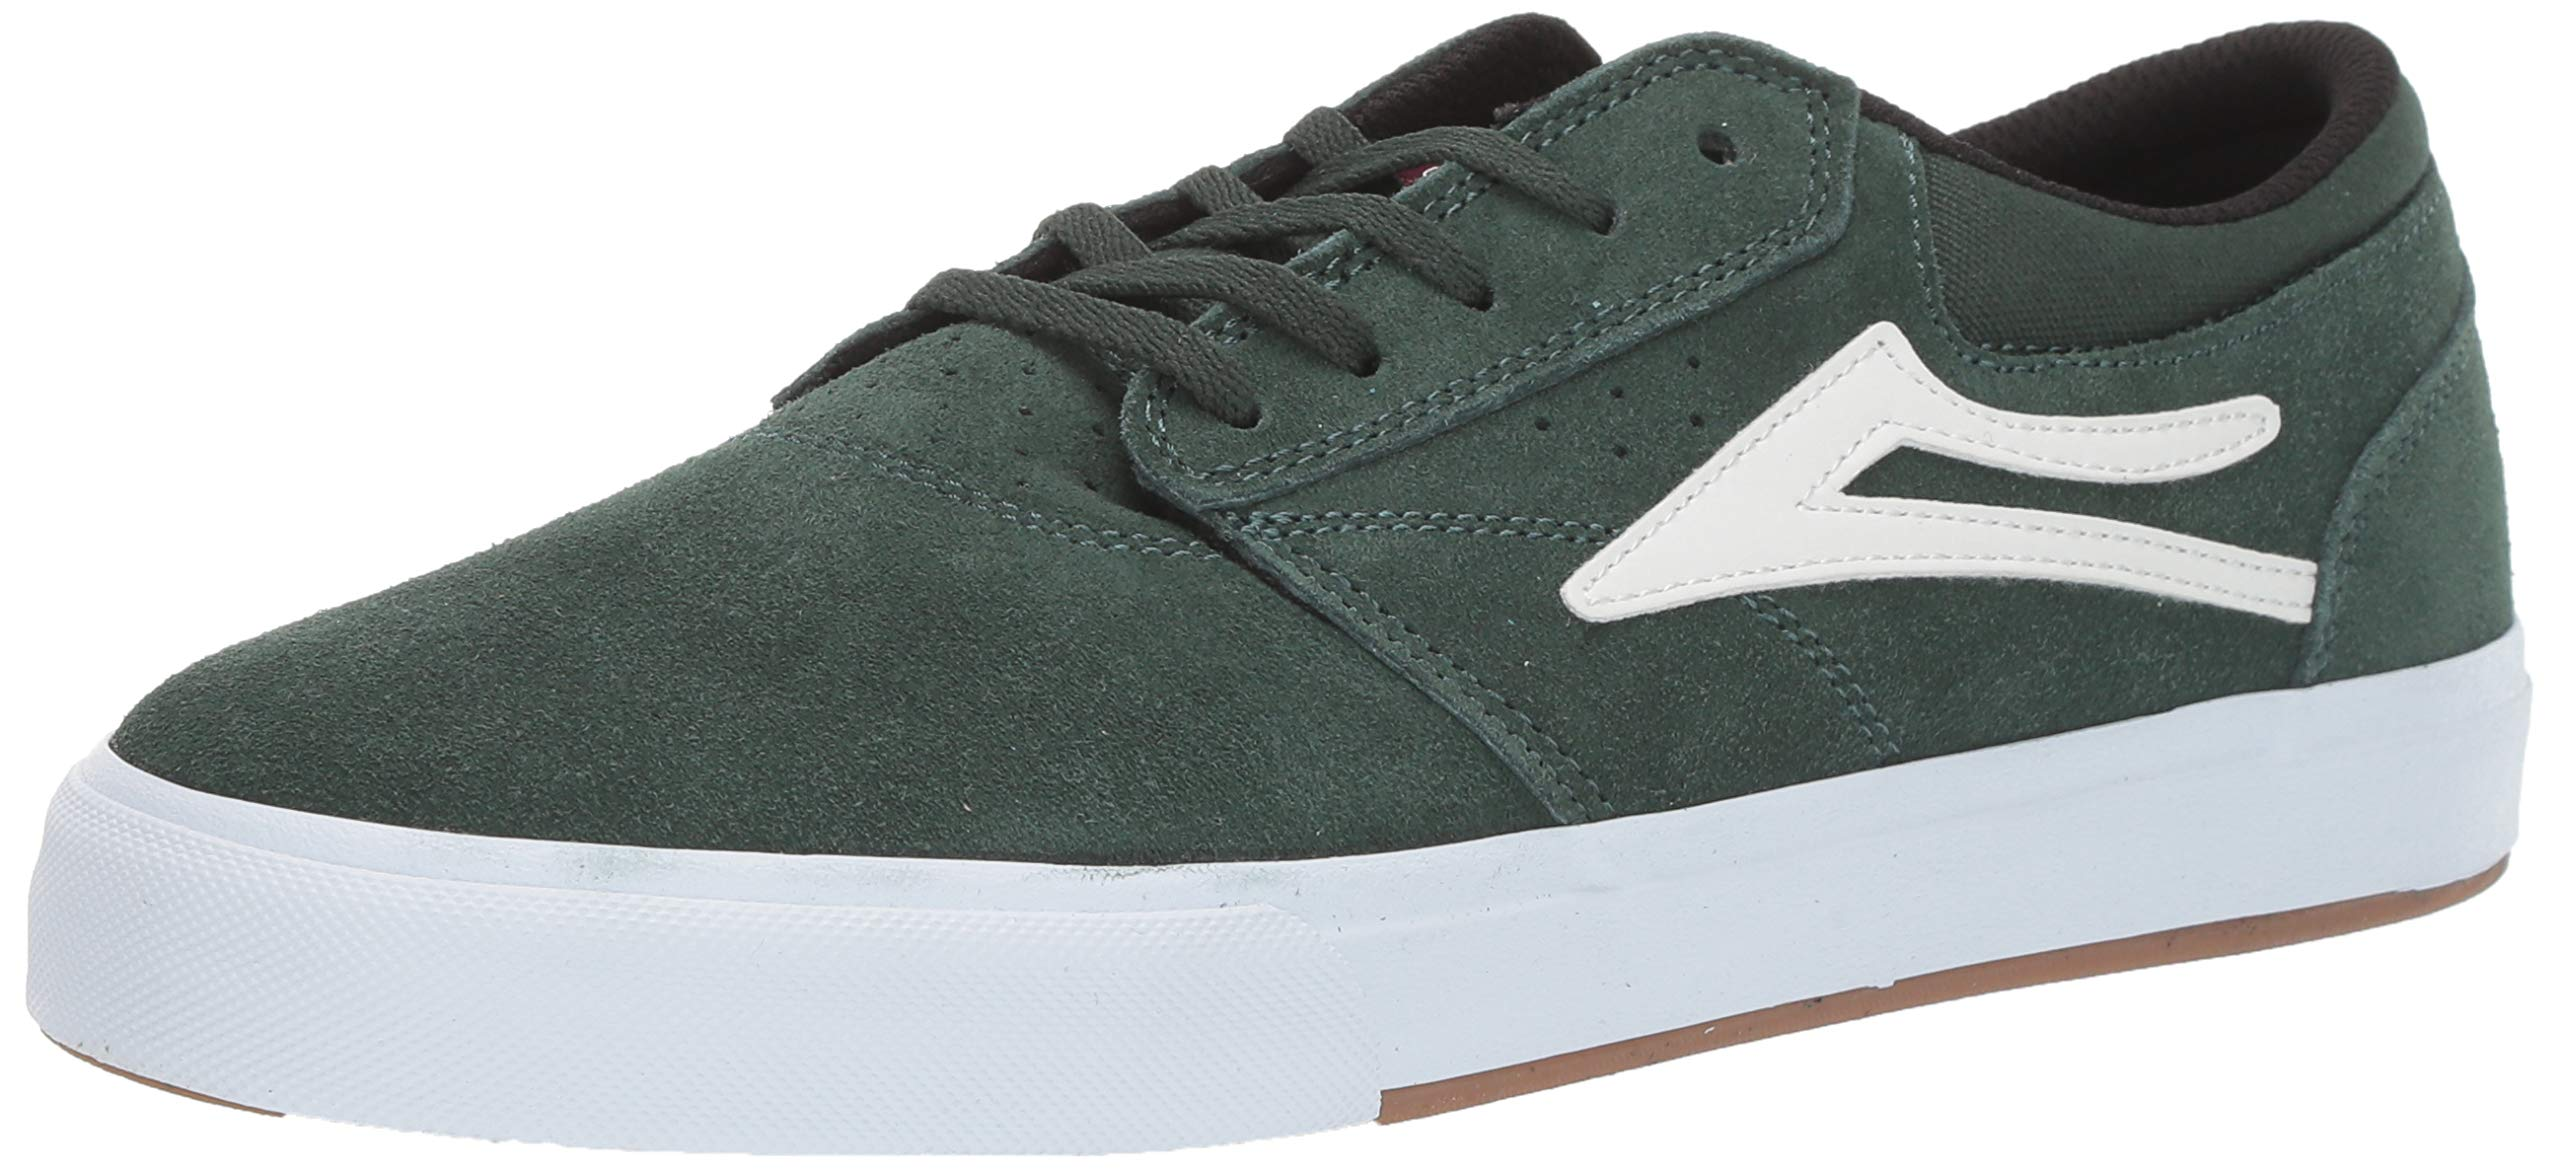 Lakai Limited Footwear Mens Griffin Skate Shoe Pine Suede 11.5 M US by Lakai Limited Footwear Mens